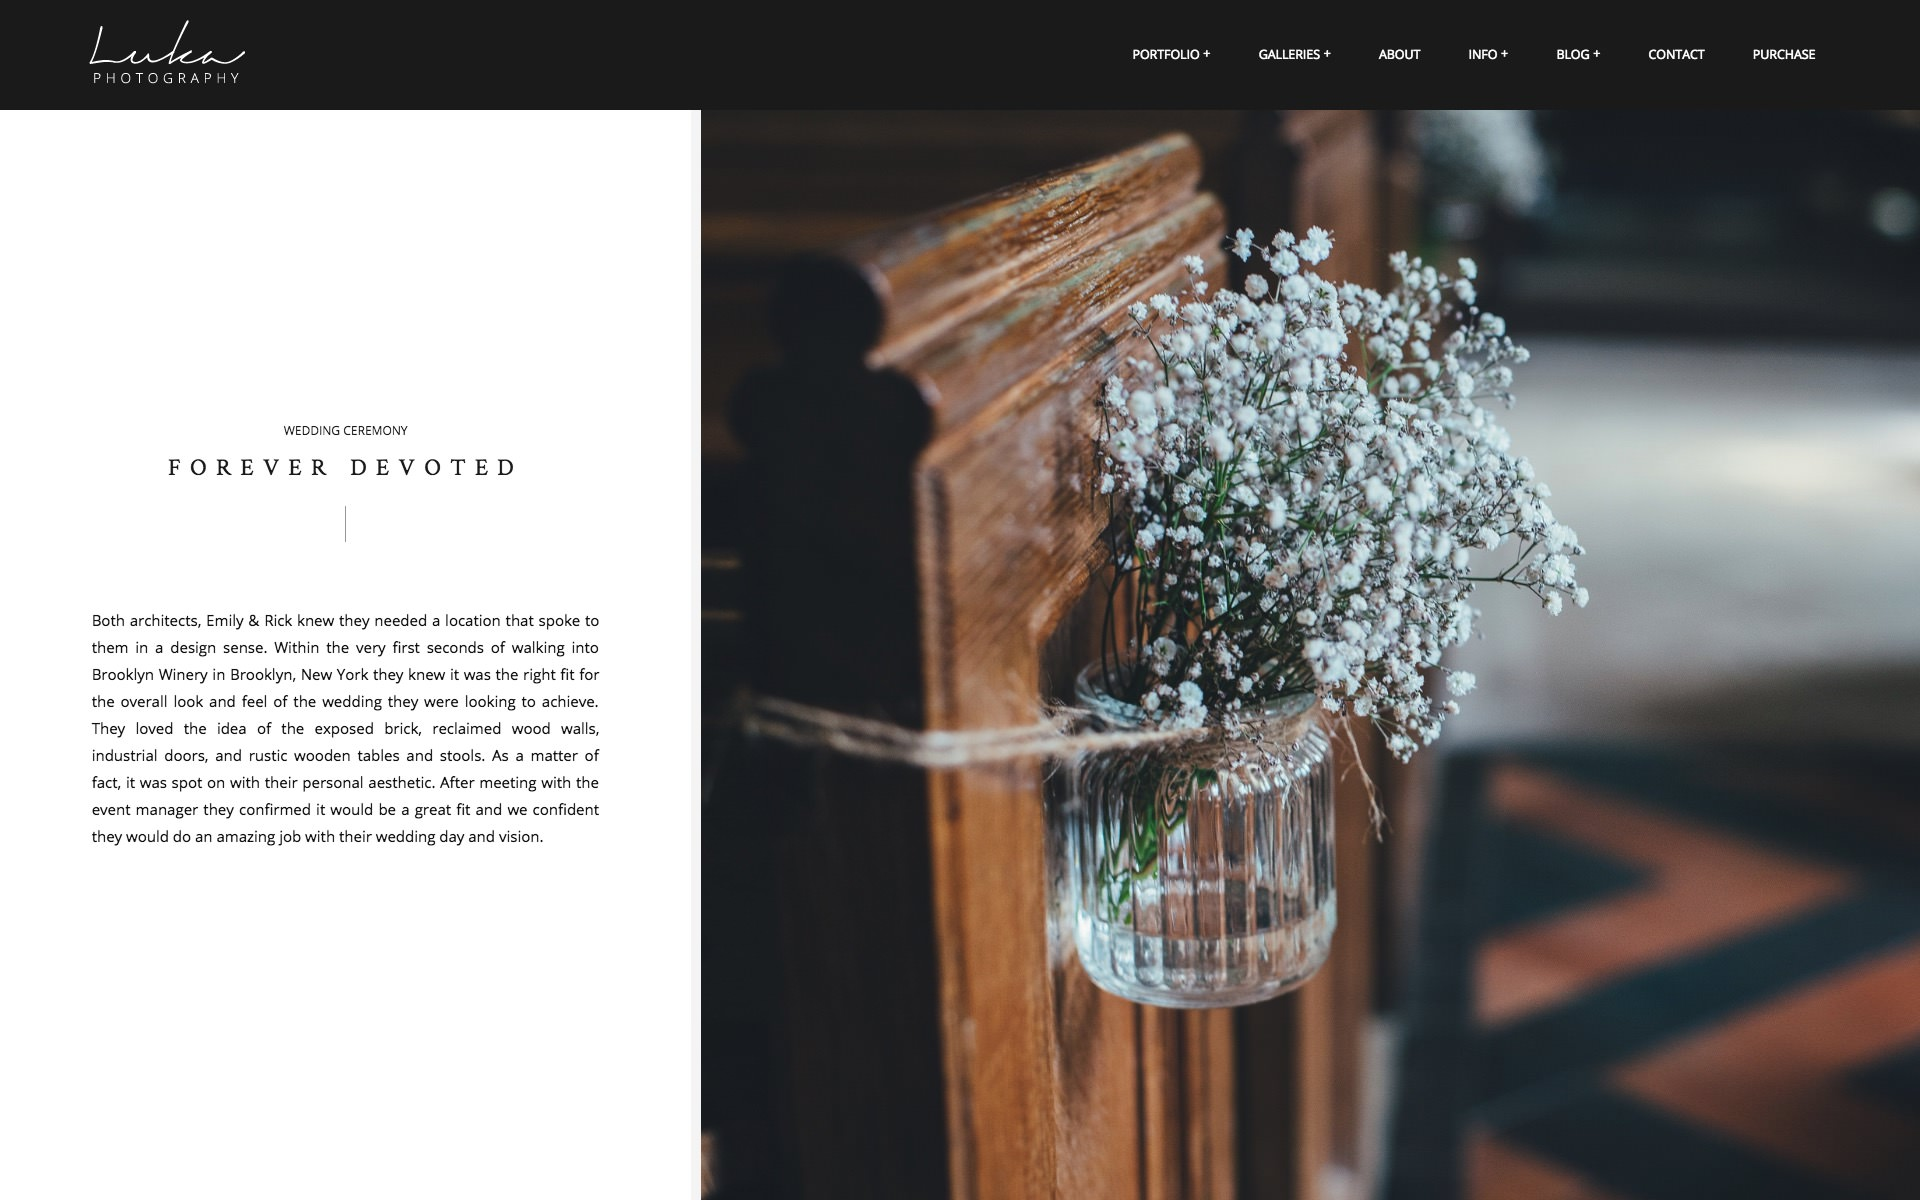 Luka Portfolio Theme for Photographers - horizontal gallery layout with text